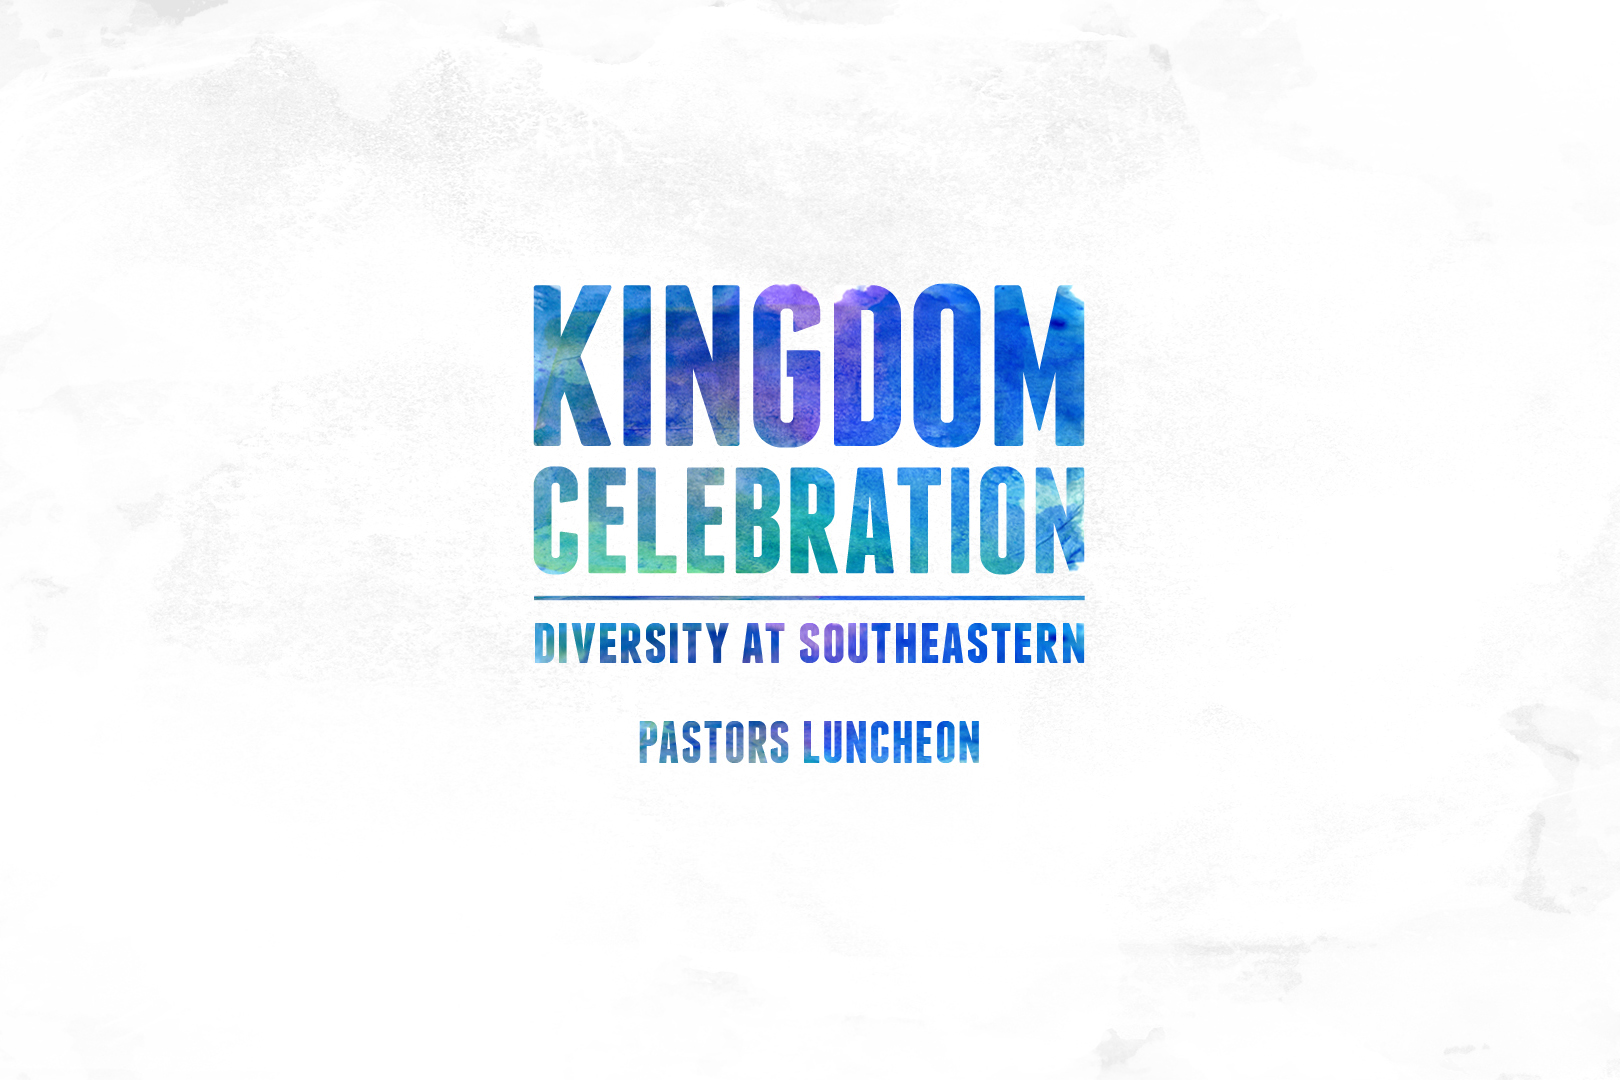 Kingdom Celebration – Pastors Luncheon